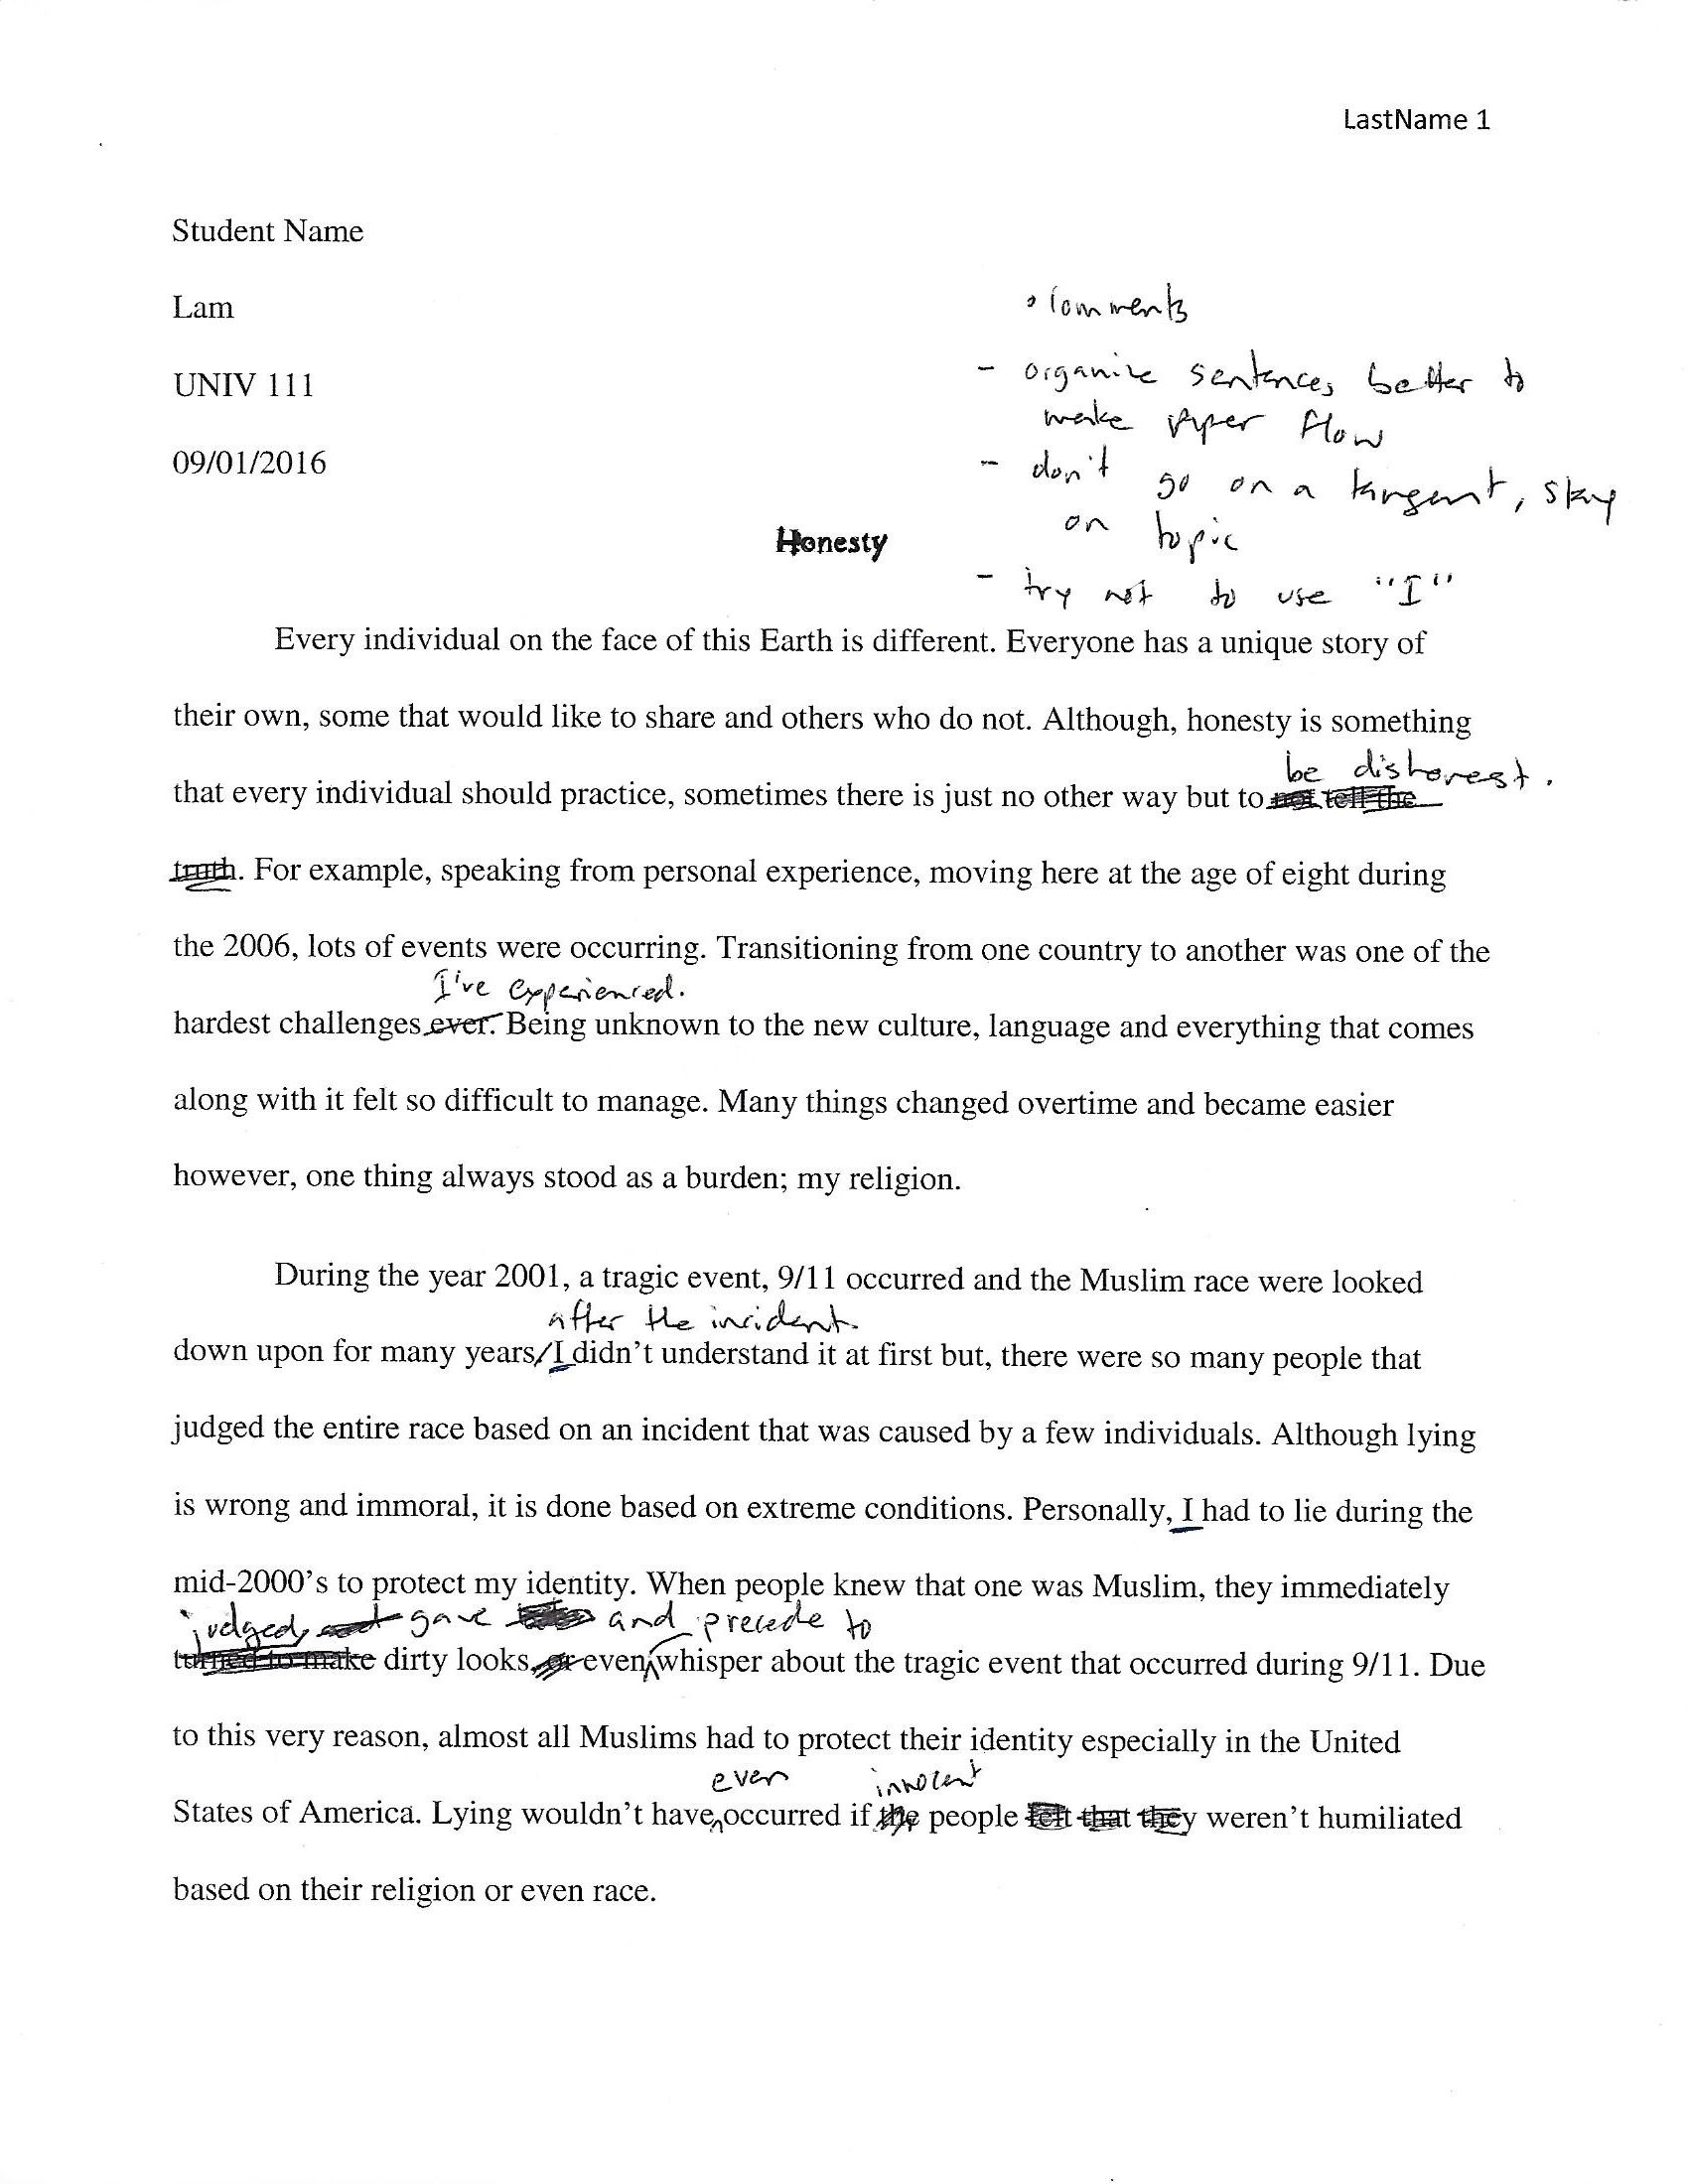 Examples Of Thesis Statements For Persuasive Essays Incendie Film Critique Essays Essays On Science And Technology also International Business Essays St Person Point Of View Essay Assignments Completed For You